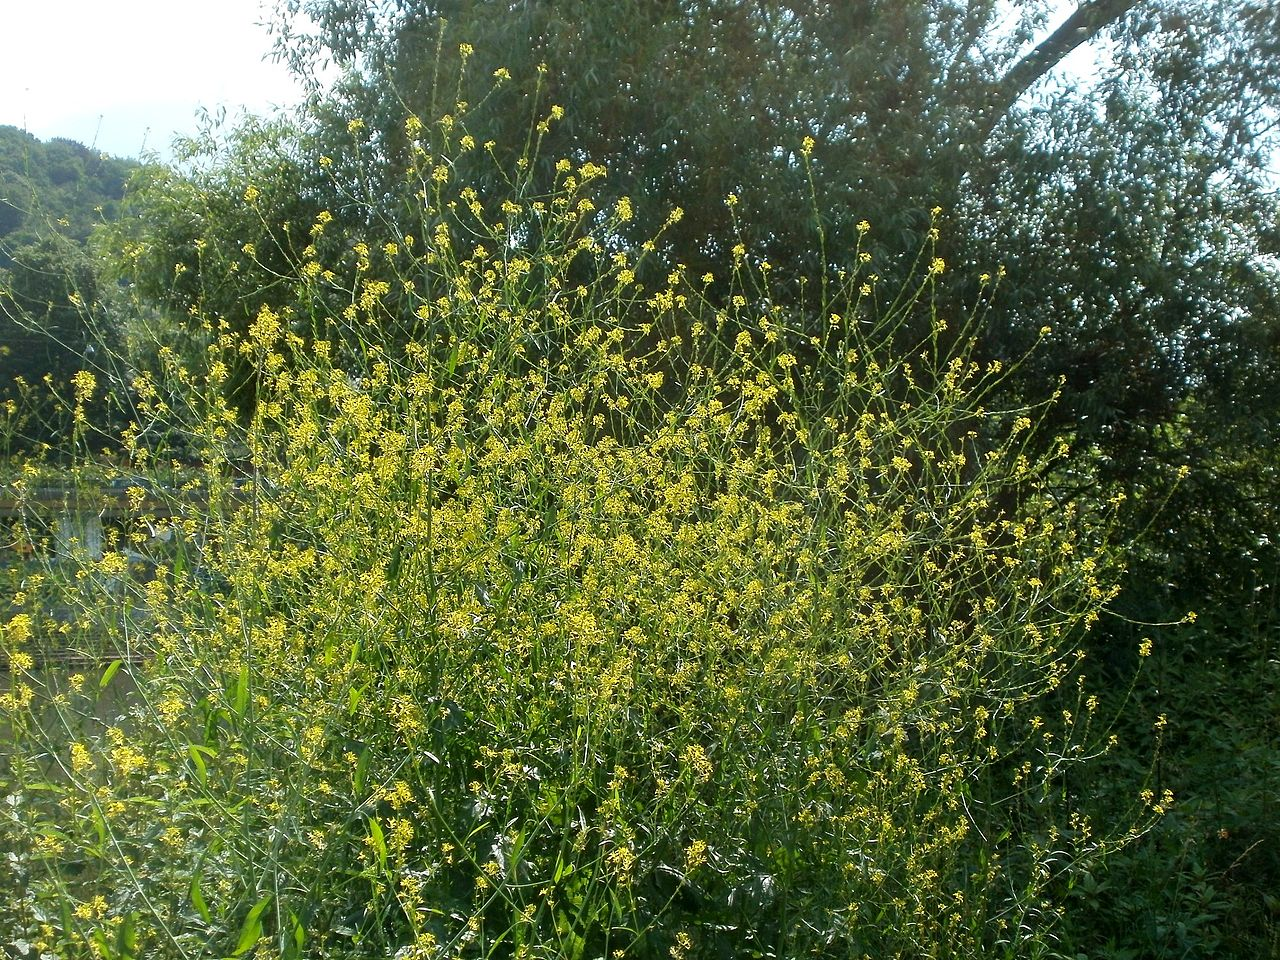 Black mustard (Brassica nigra) is an annual herbaceous plant that originated in the Middle East